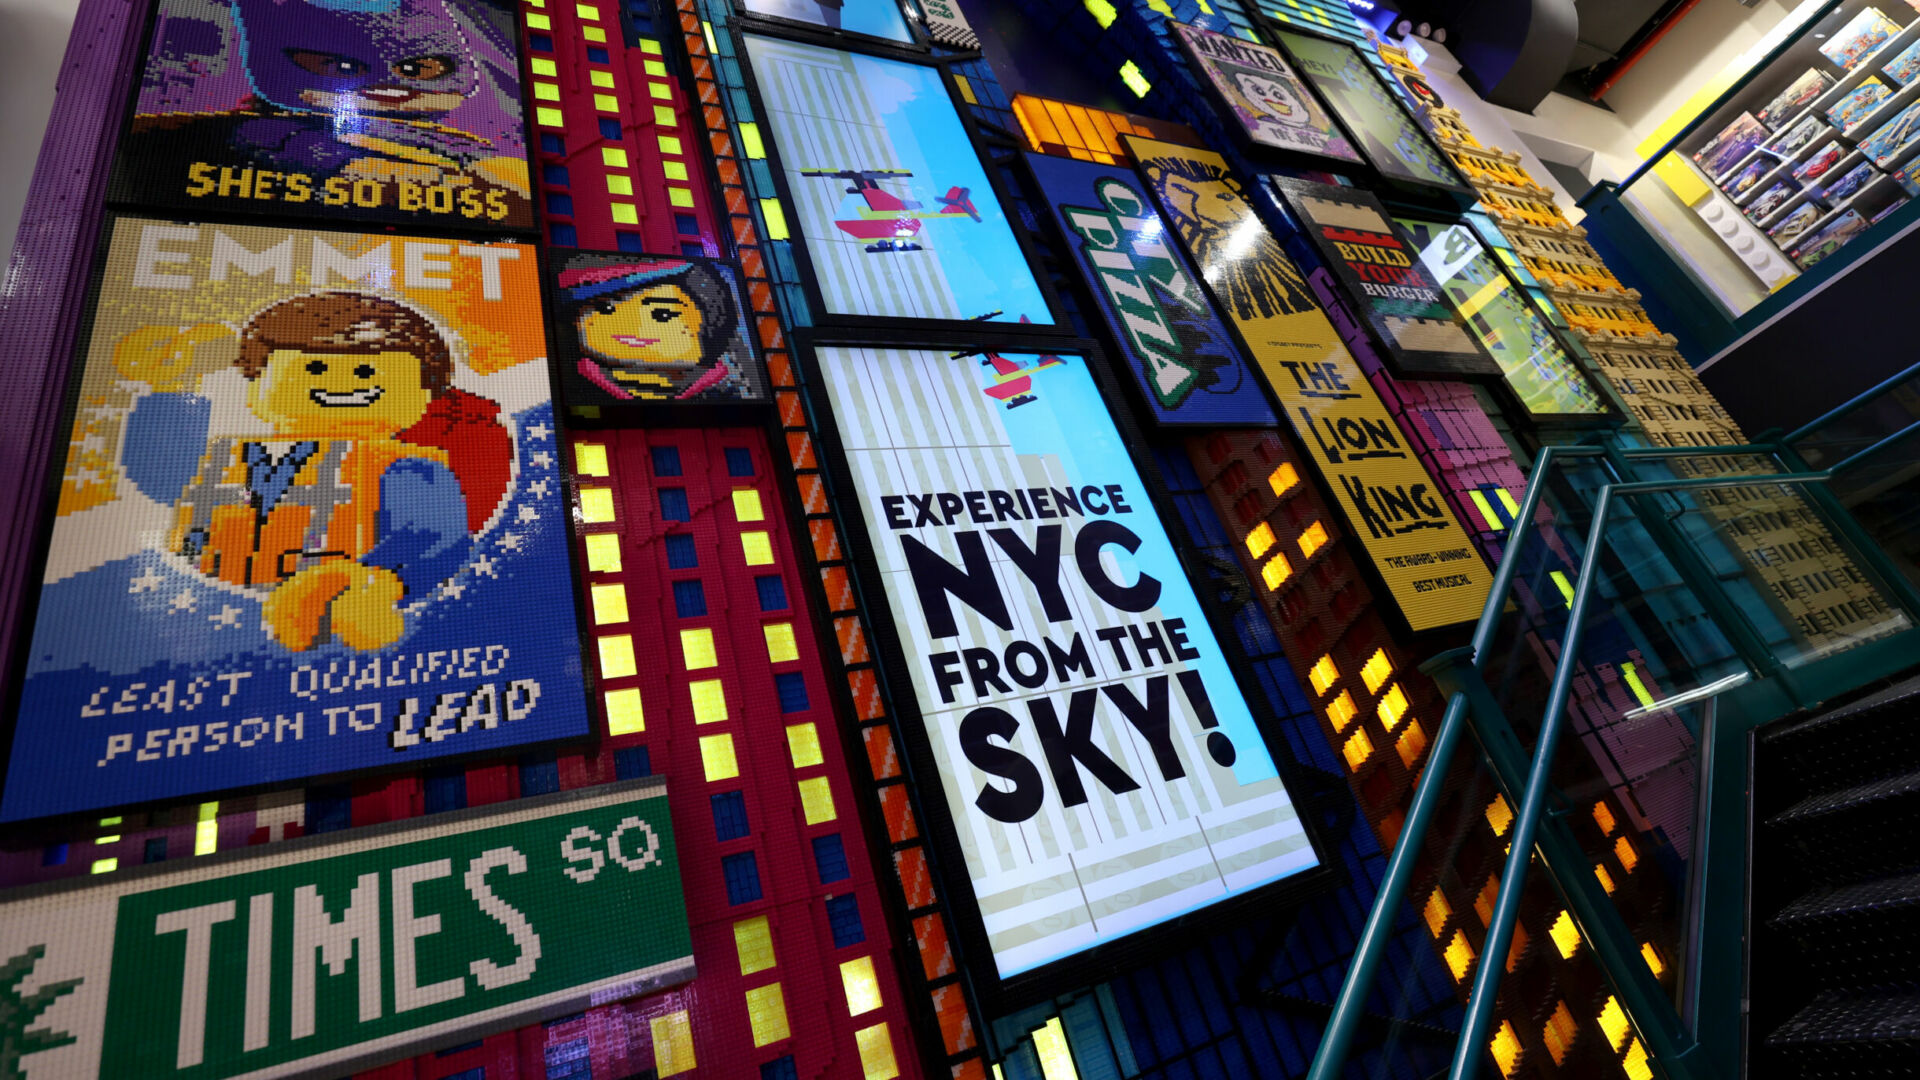 An NYC skyline-inspired mural decorates the stairwell leading to the second floor. (Photo by Cindy Ord/Getty Images)